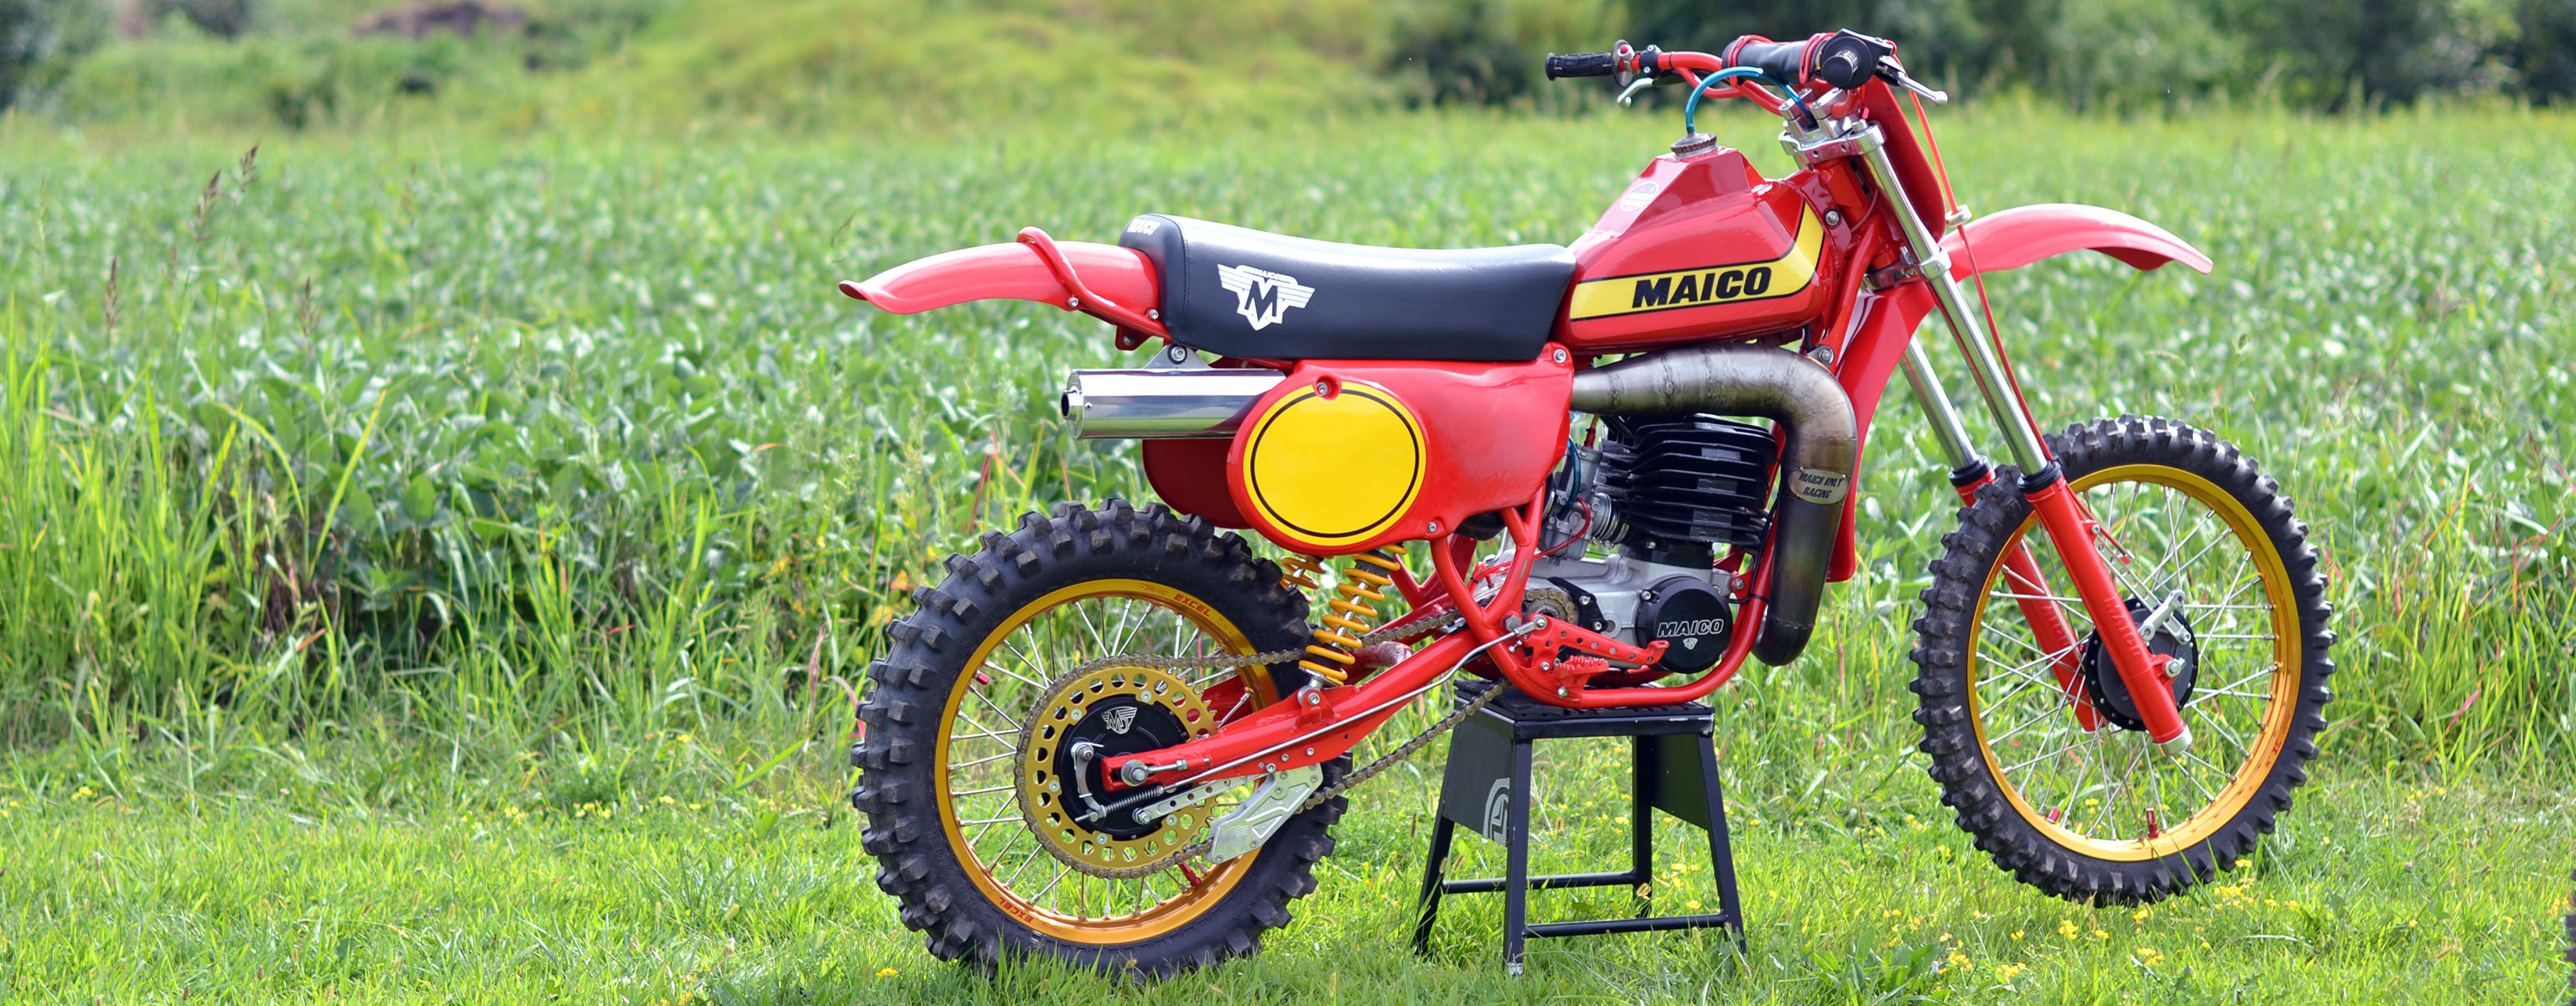 Vintage 1979 Maico Motorcycle Restoration - What\'s Old is New Again ...